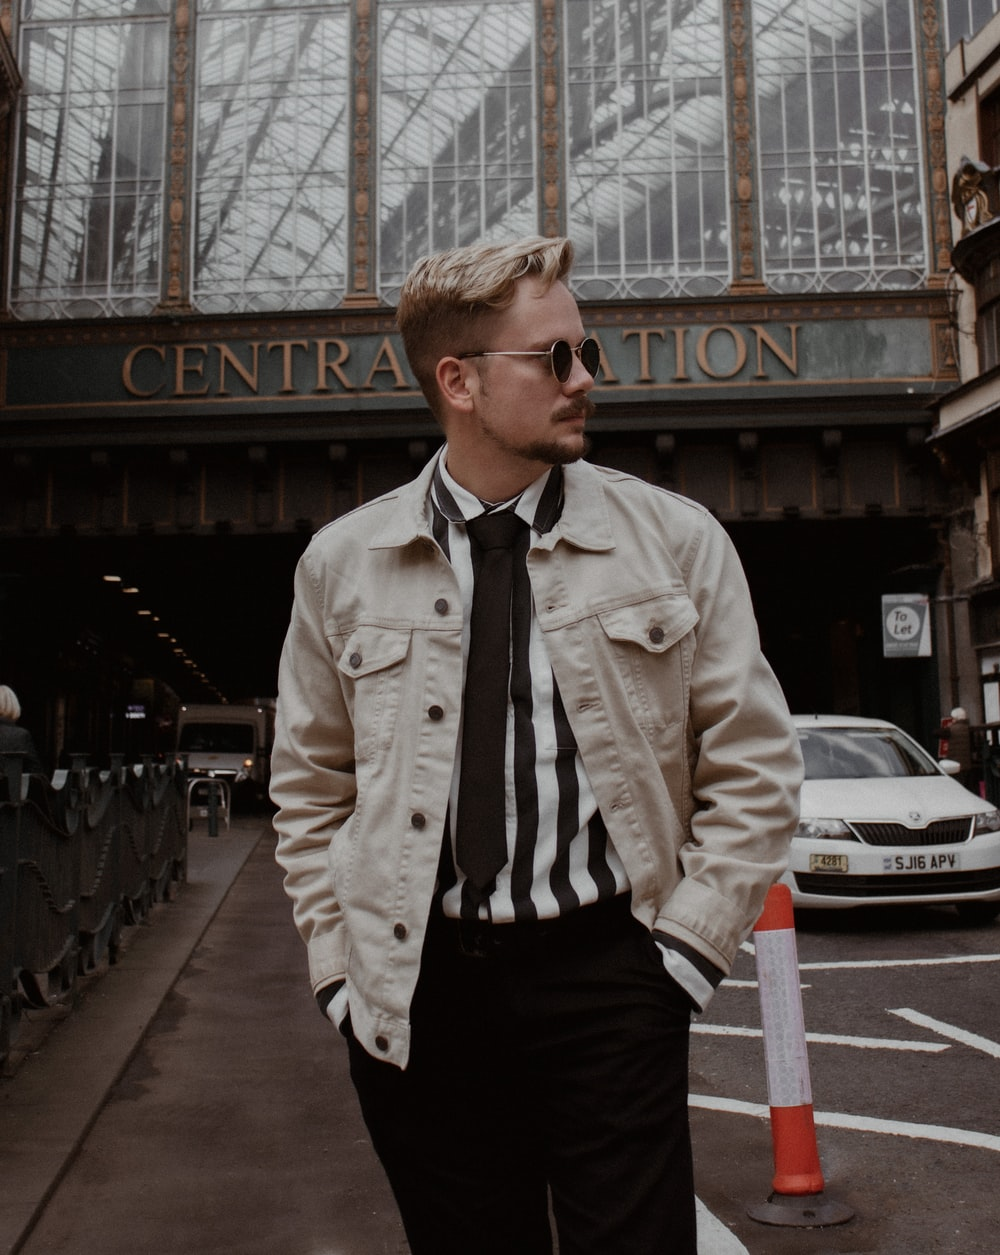 man in beige button up jacket and black pants standing on sidewalk during daytime